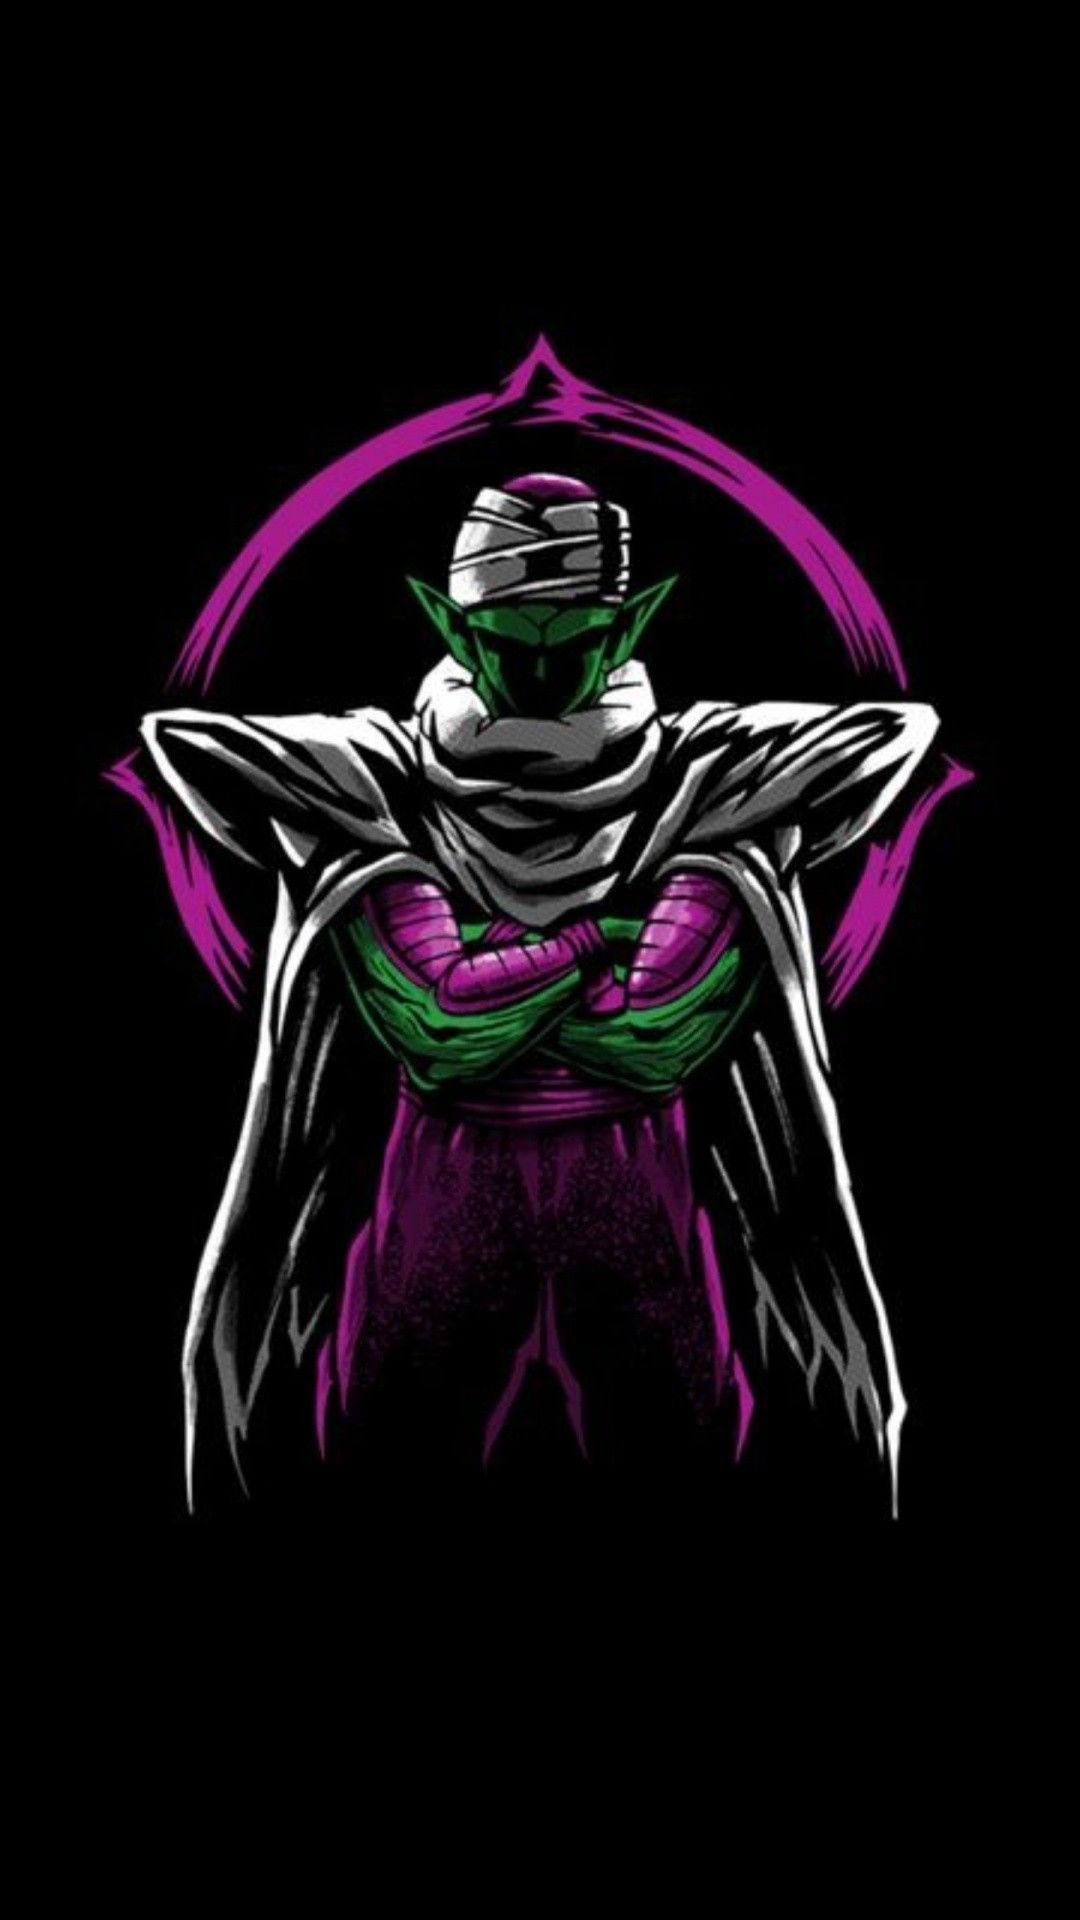 Piccolo Dbz Wallpapers Top Free Piccolo Dbz Backgrounds Wallpaperaccess